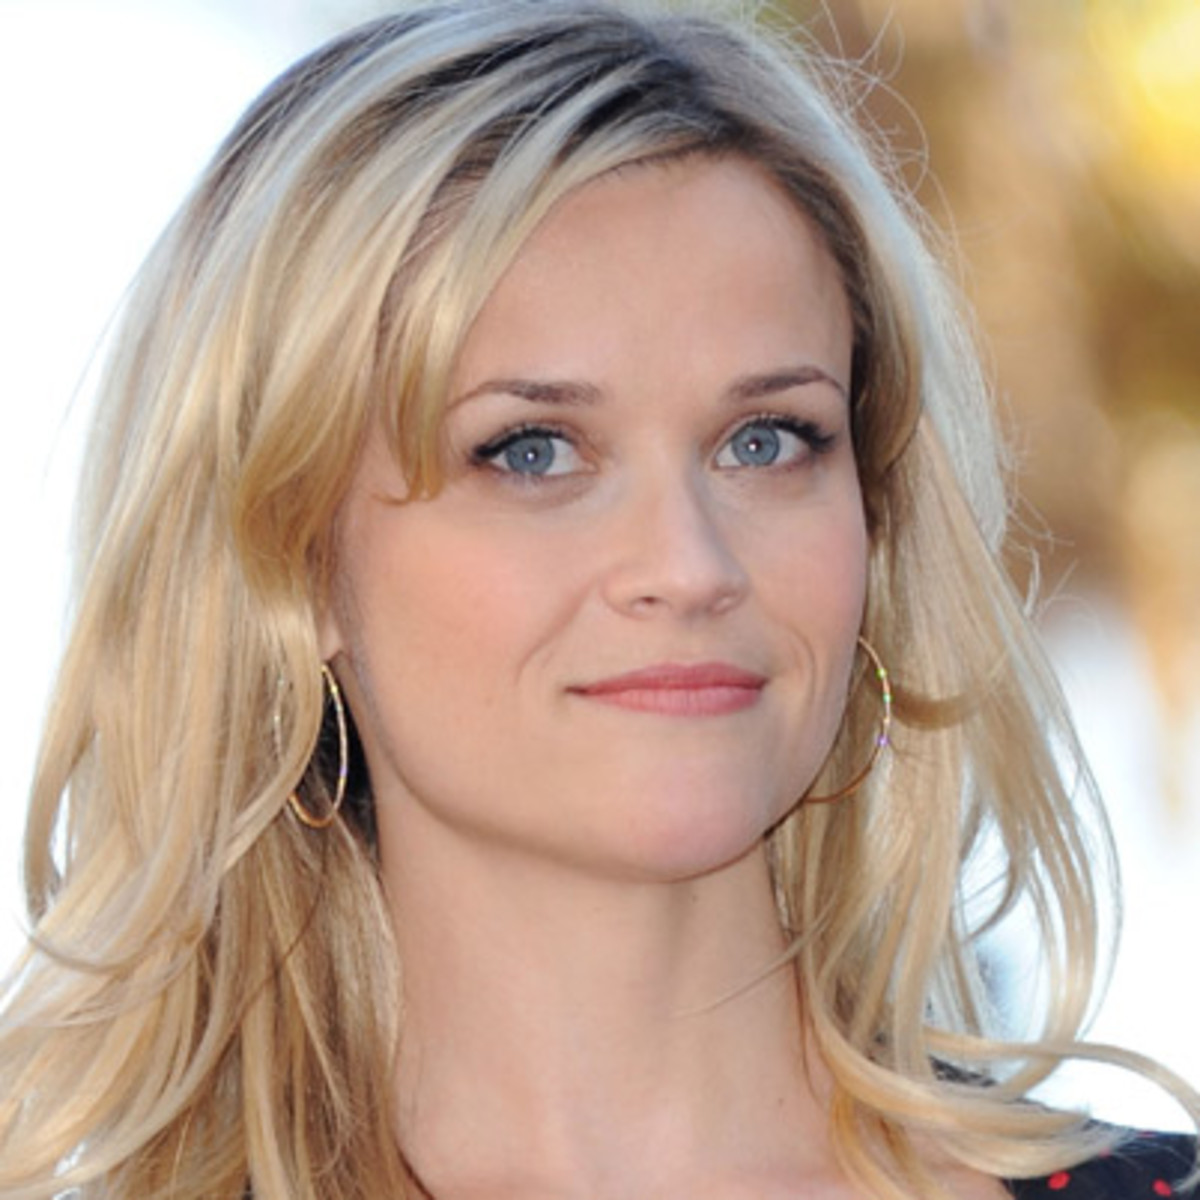 Pic Reese Witherspoon naked (48 photo), Ass, Sideboobs, Selfie, swimsuit 2015